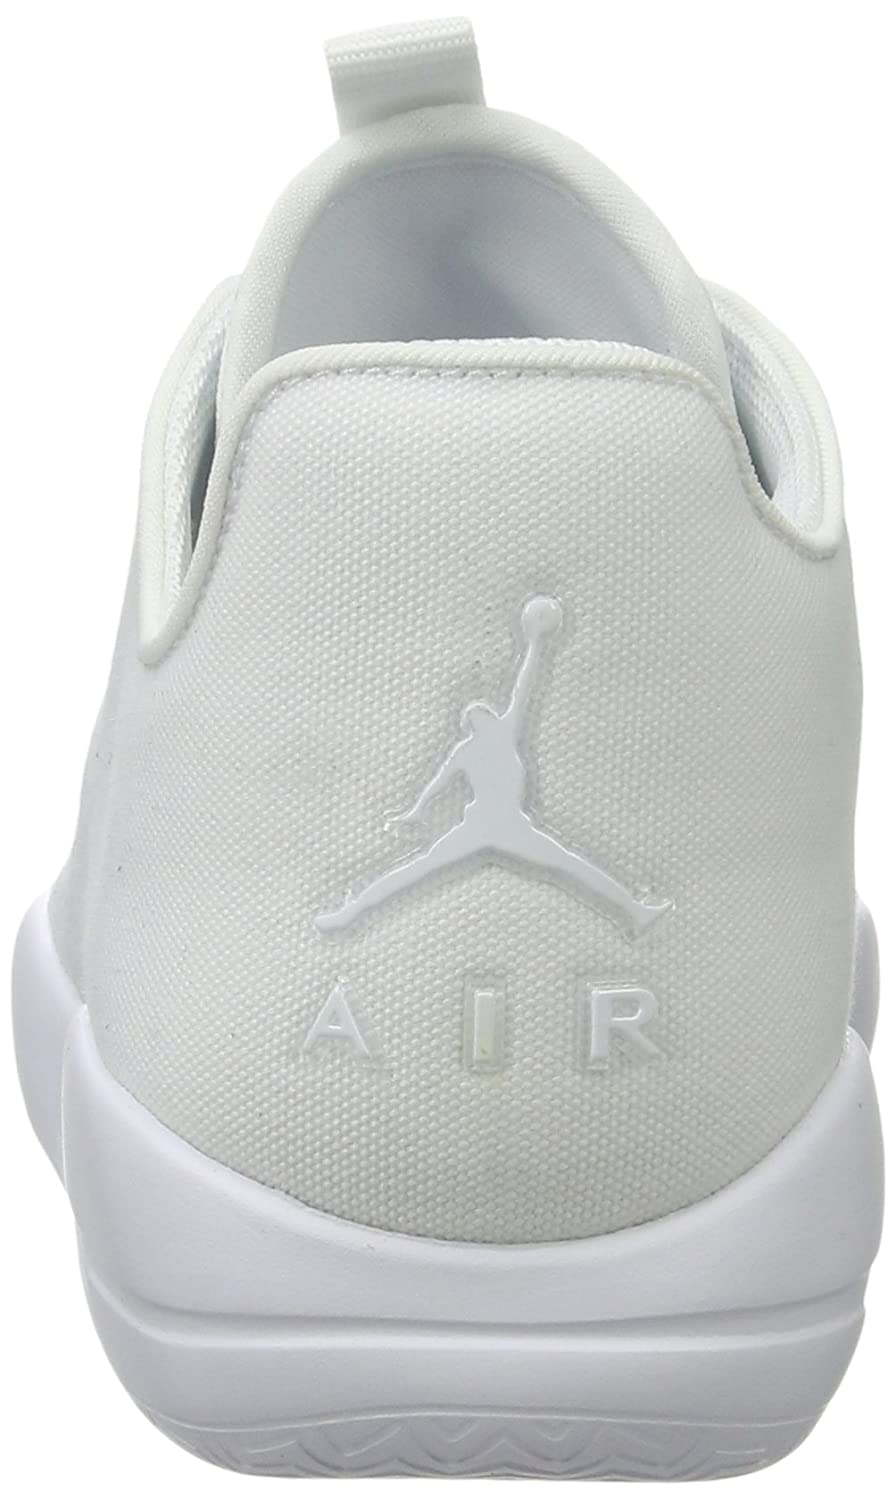 Jordan Men D(M) Eclipse (Gray/Cool Gray/White/Black) B00LC35WR0 10.5 D(M) Men US|White / White 8ba036